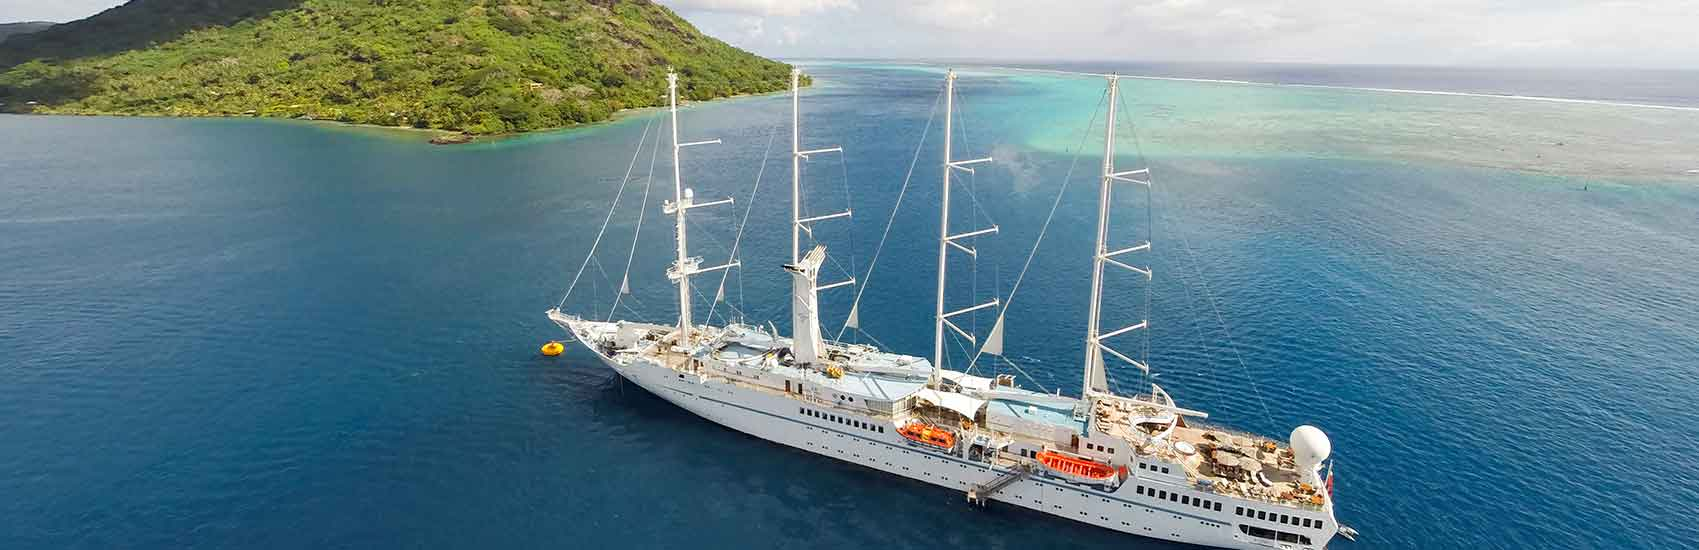 Discover Tahiti in Private Yacht Style with Windstar 0